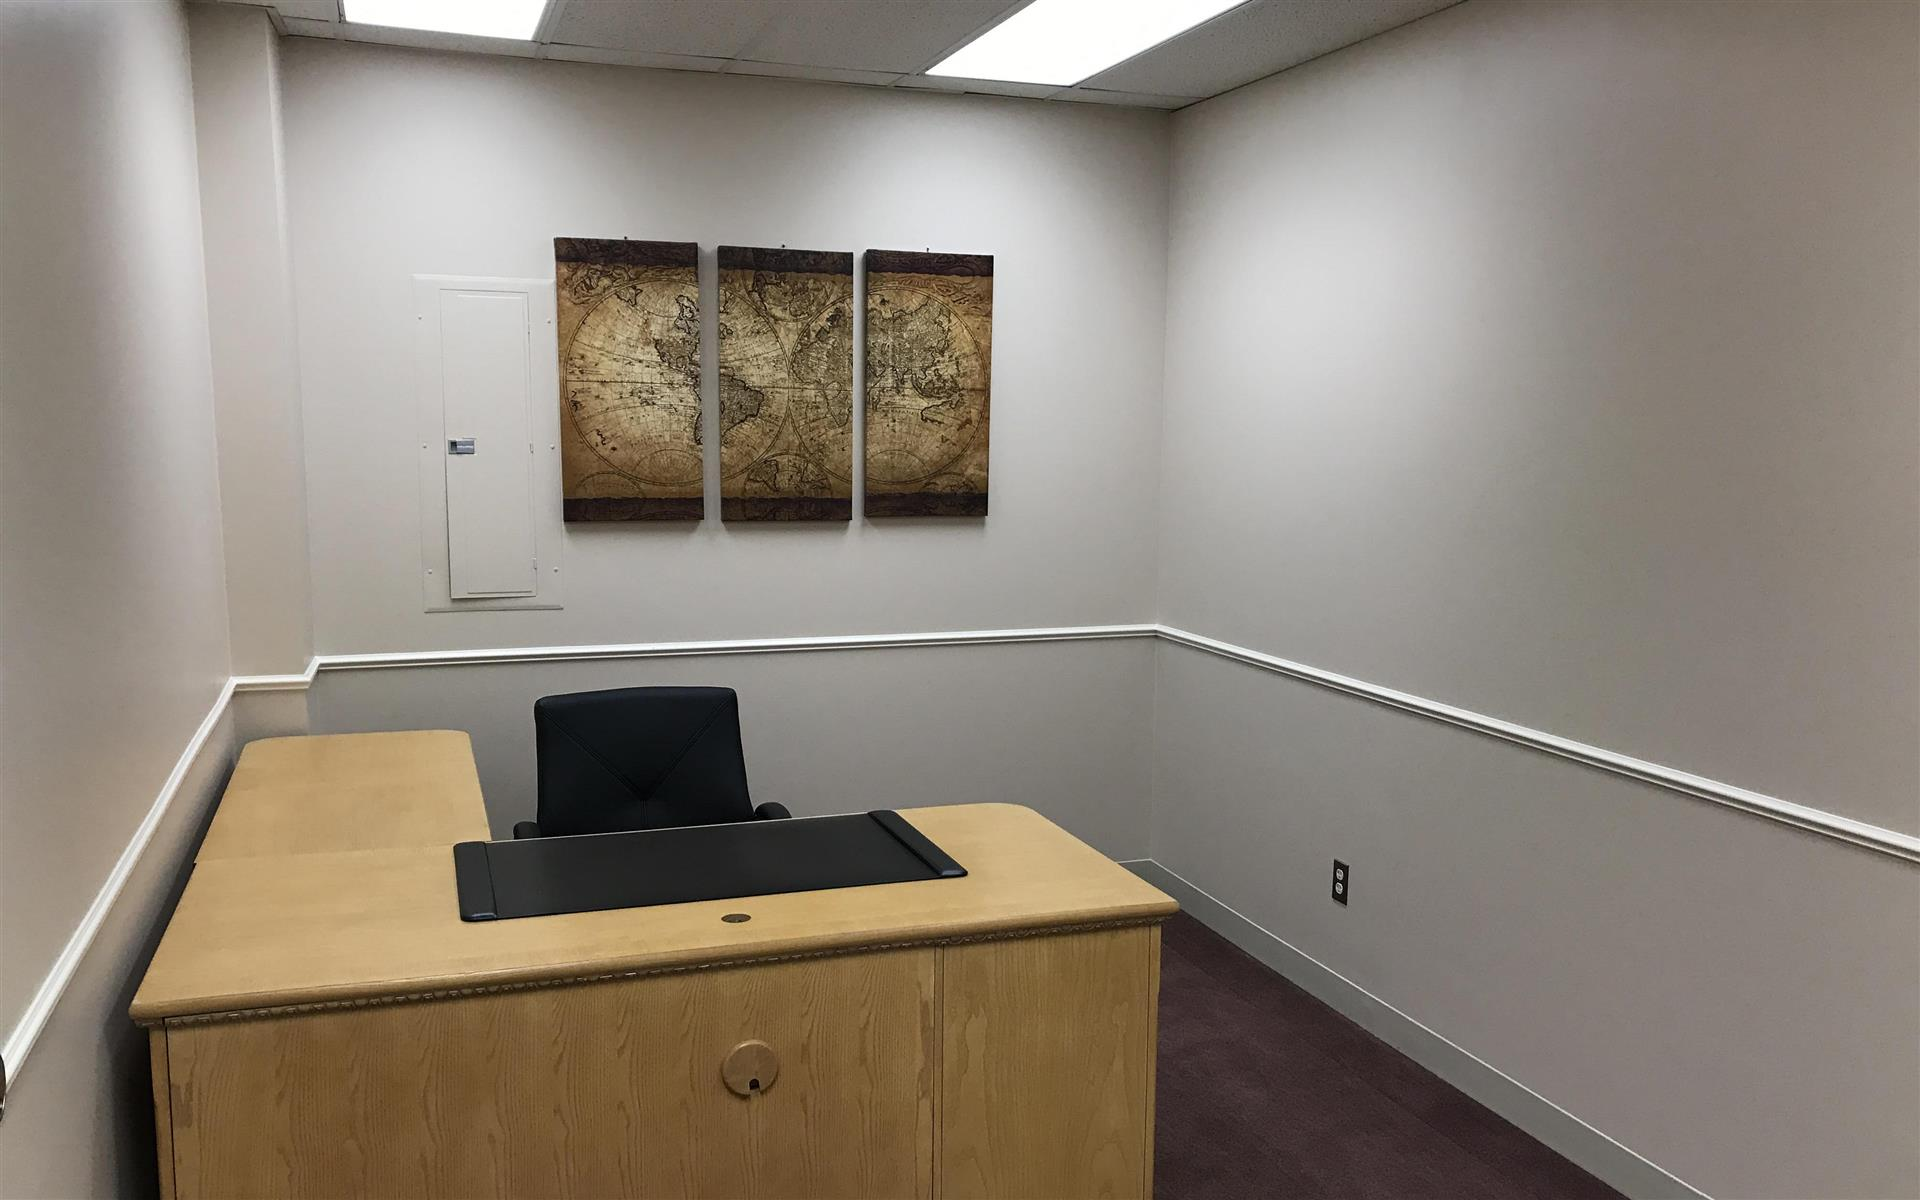 E. Garris Law Firm, LLC - Extra Office Space and Amenities